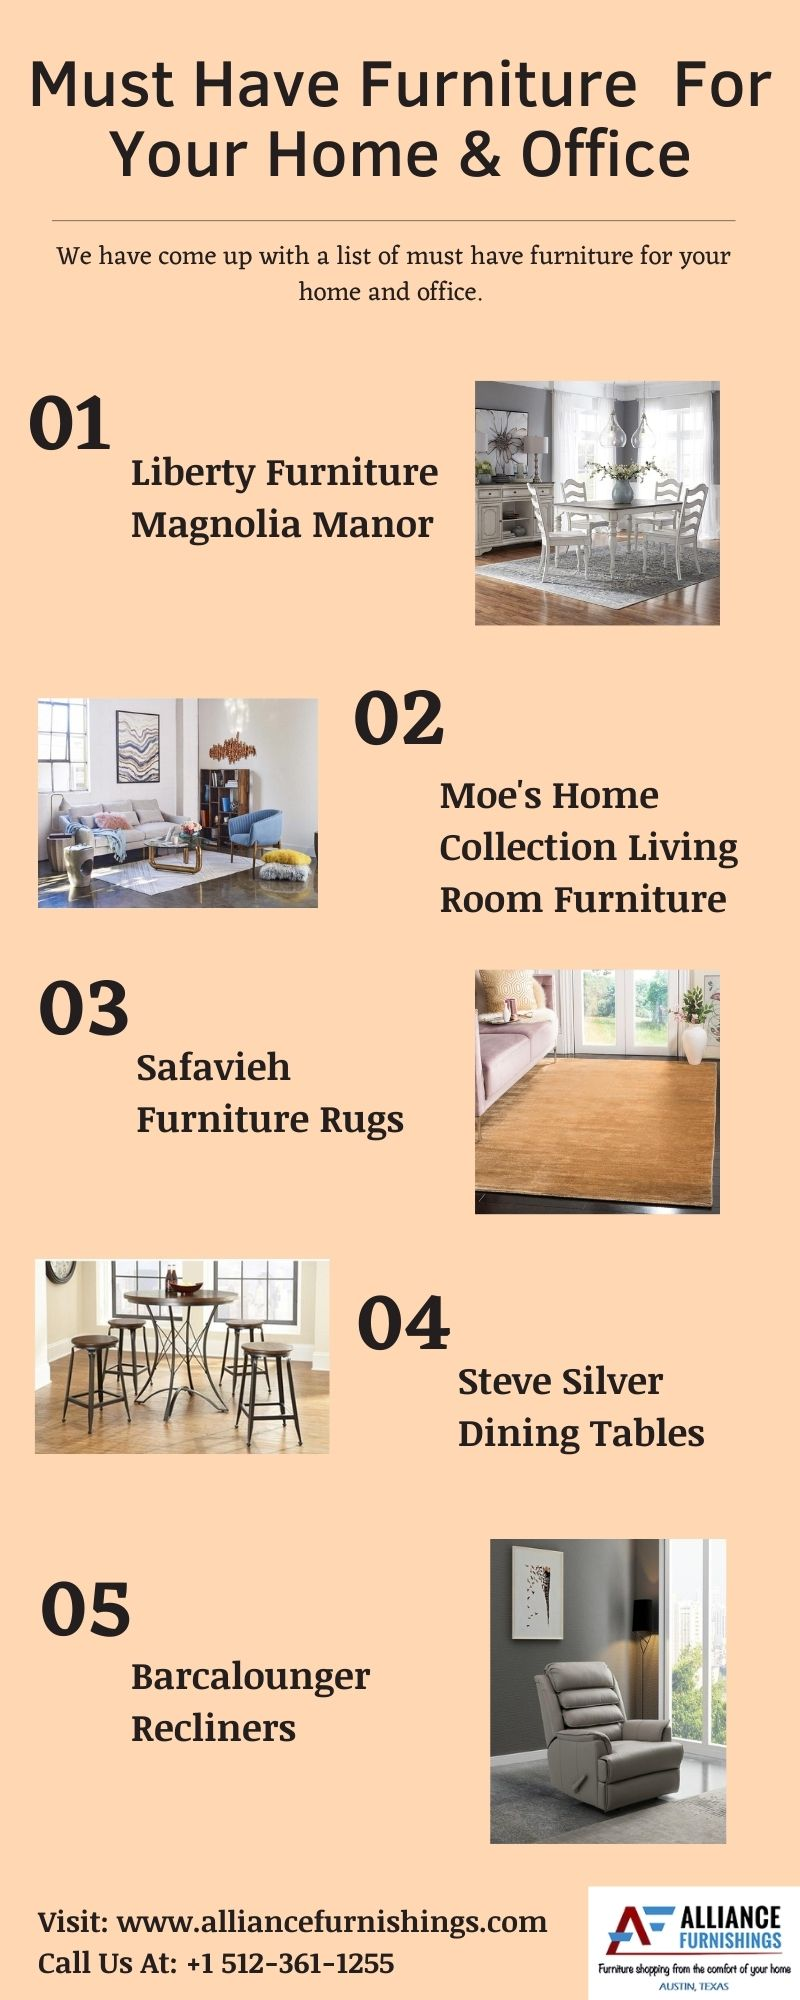 Must Have Furniture For Your Home & Office